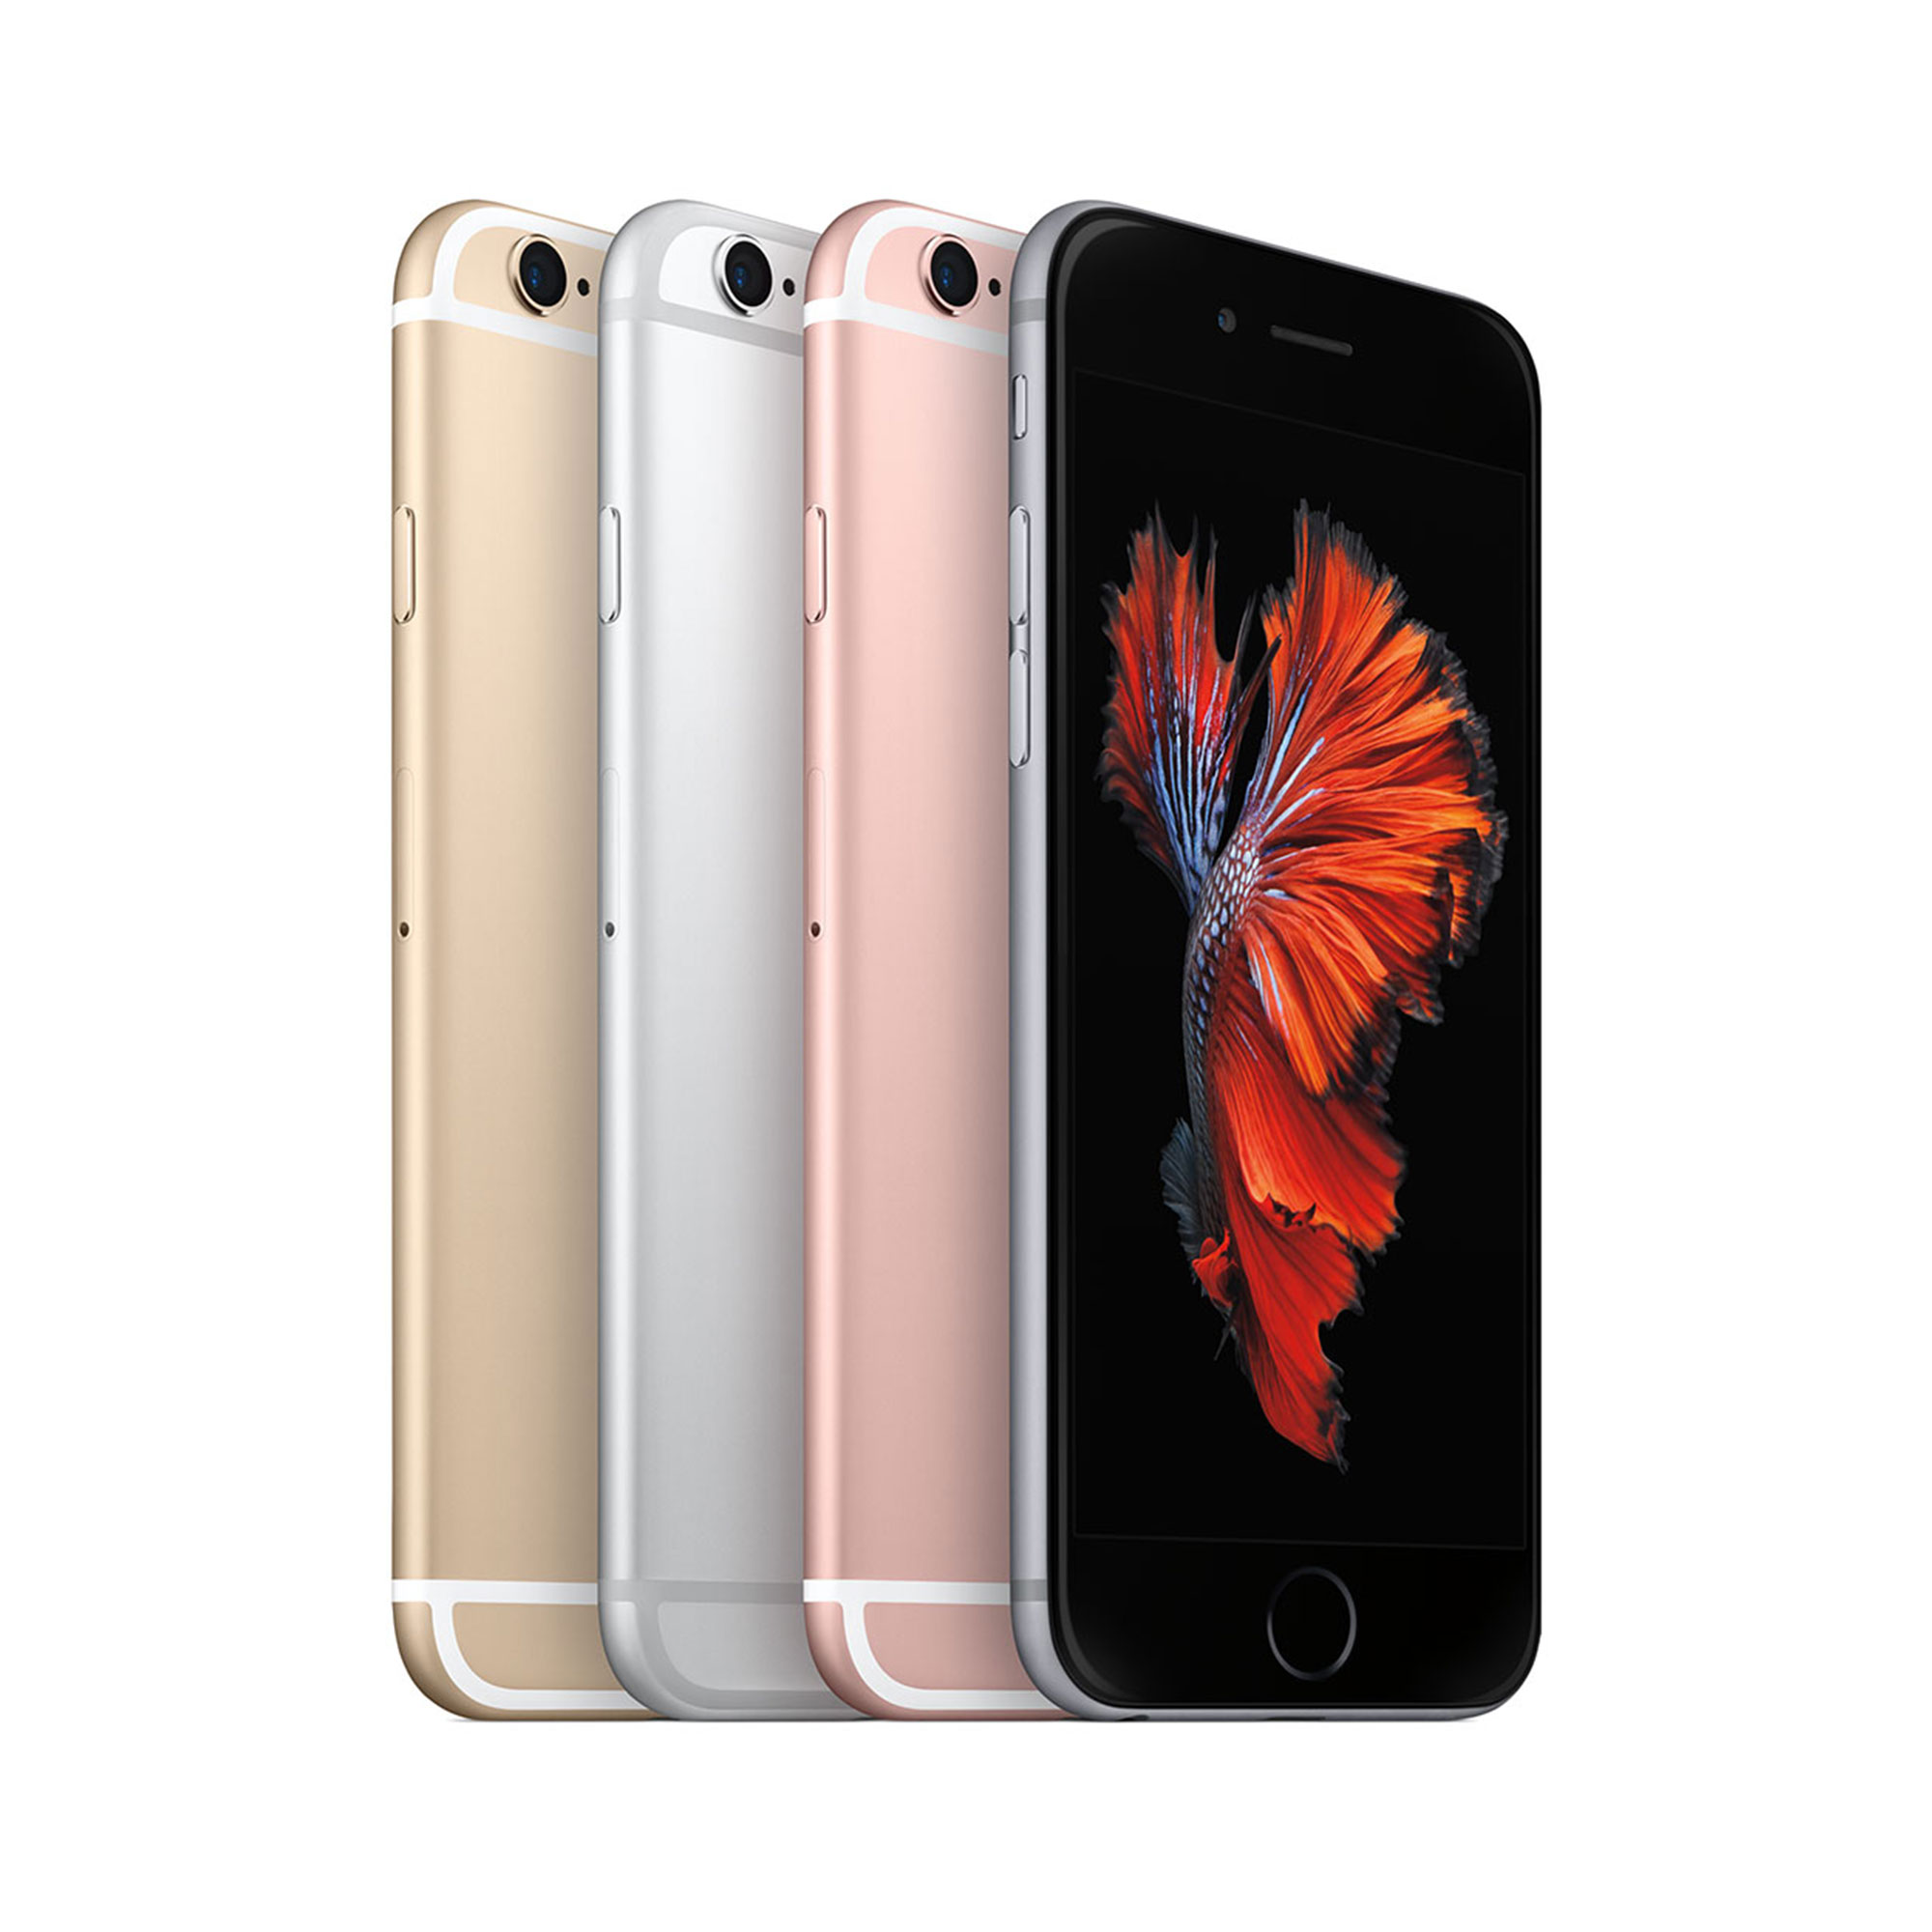 uk availability 0a3a5 0d362 Apple iPhone 6s Plus